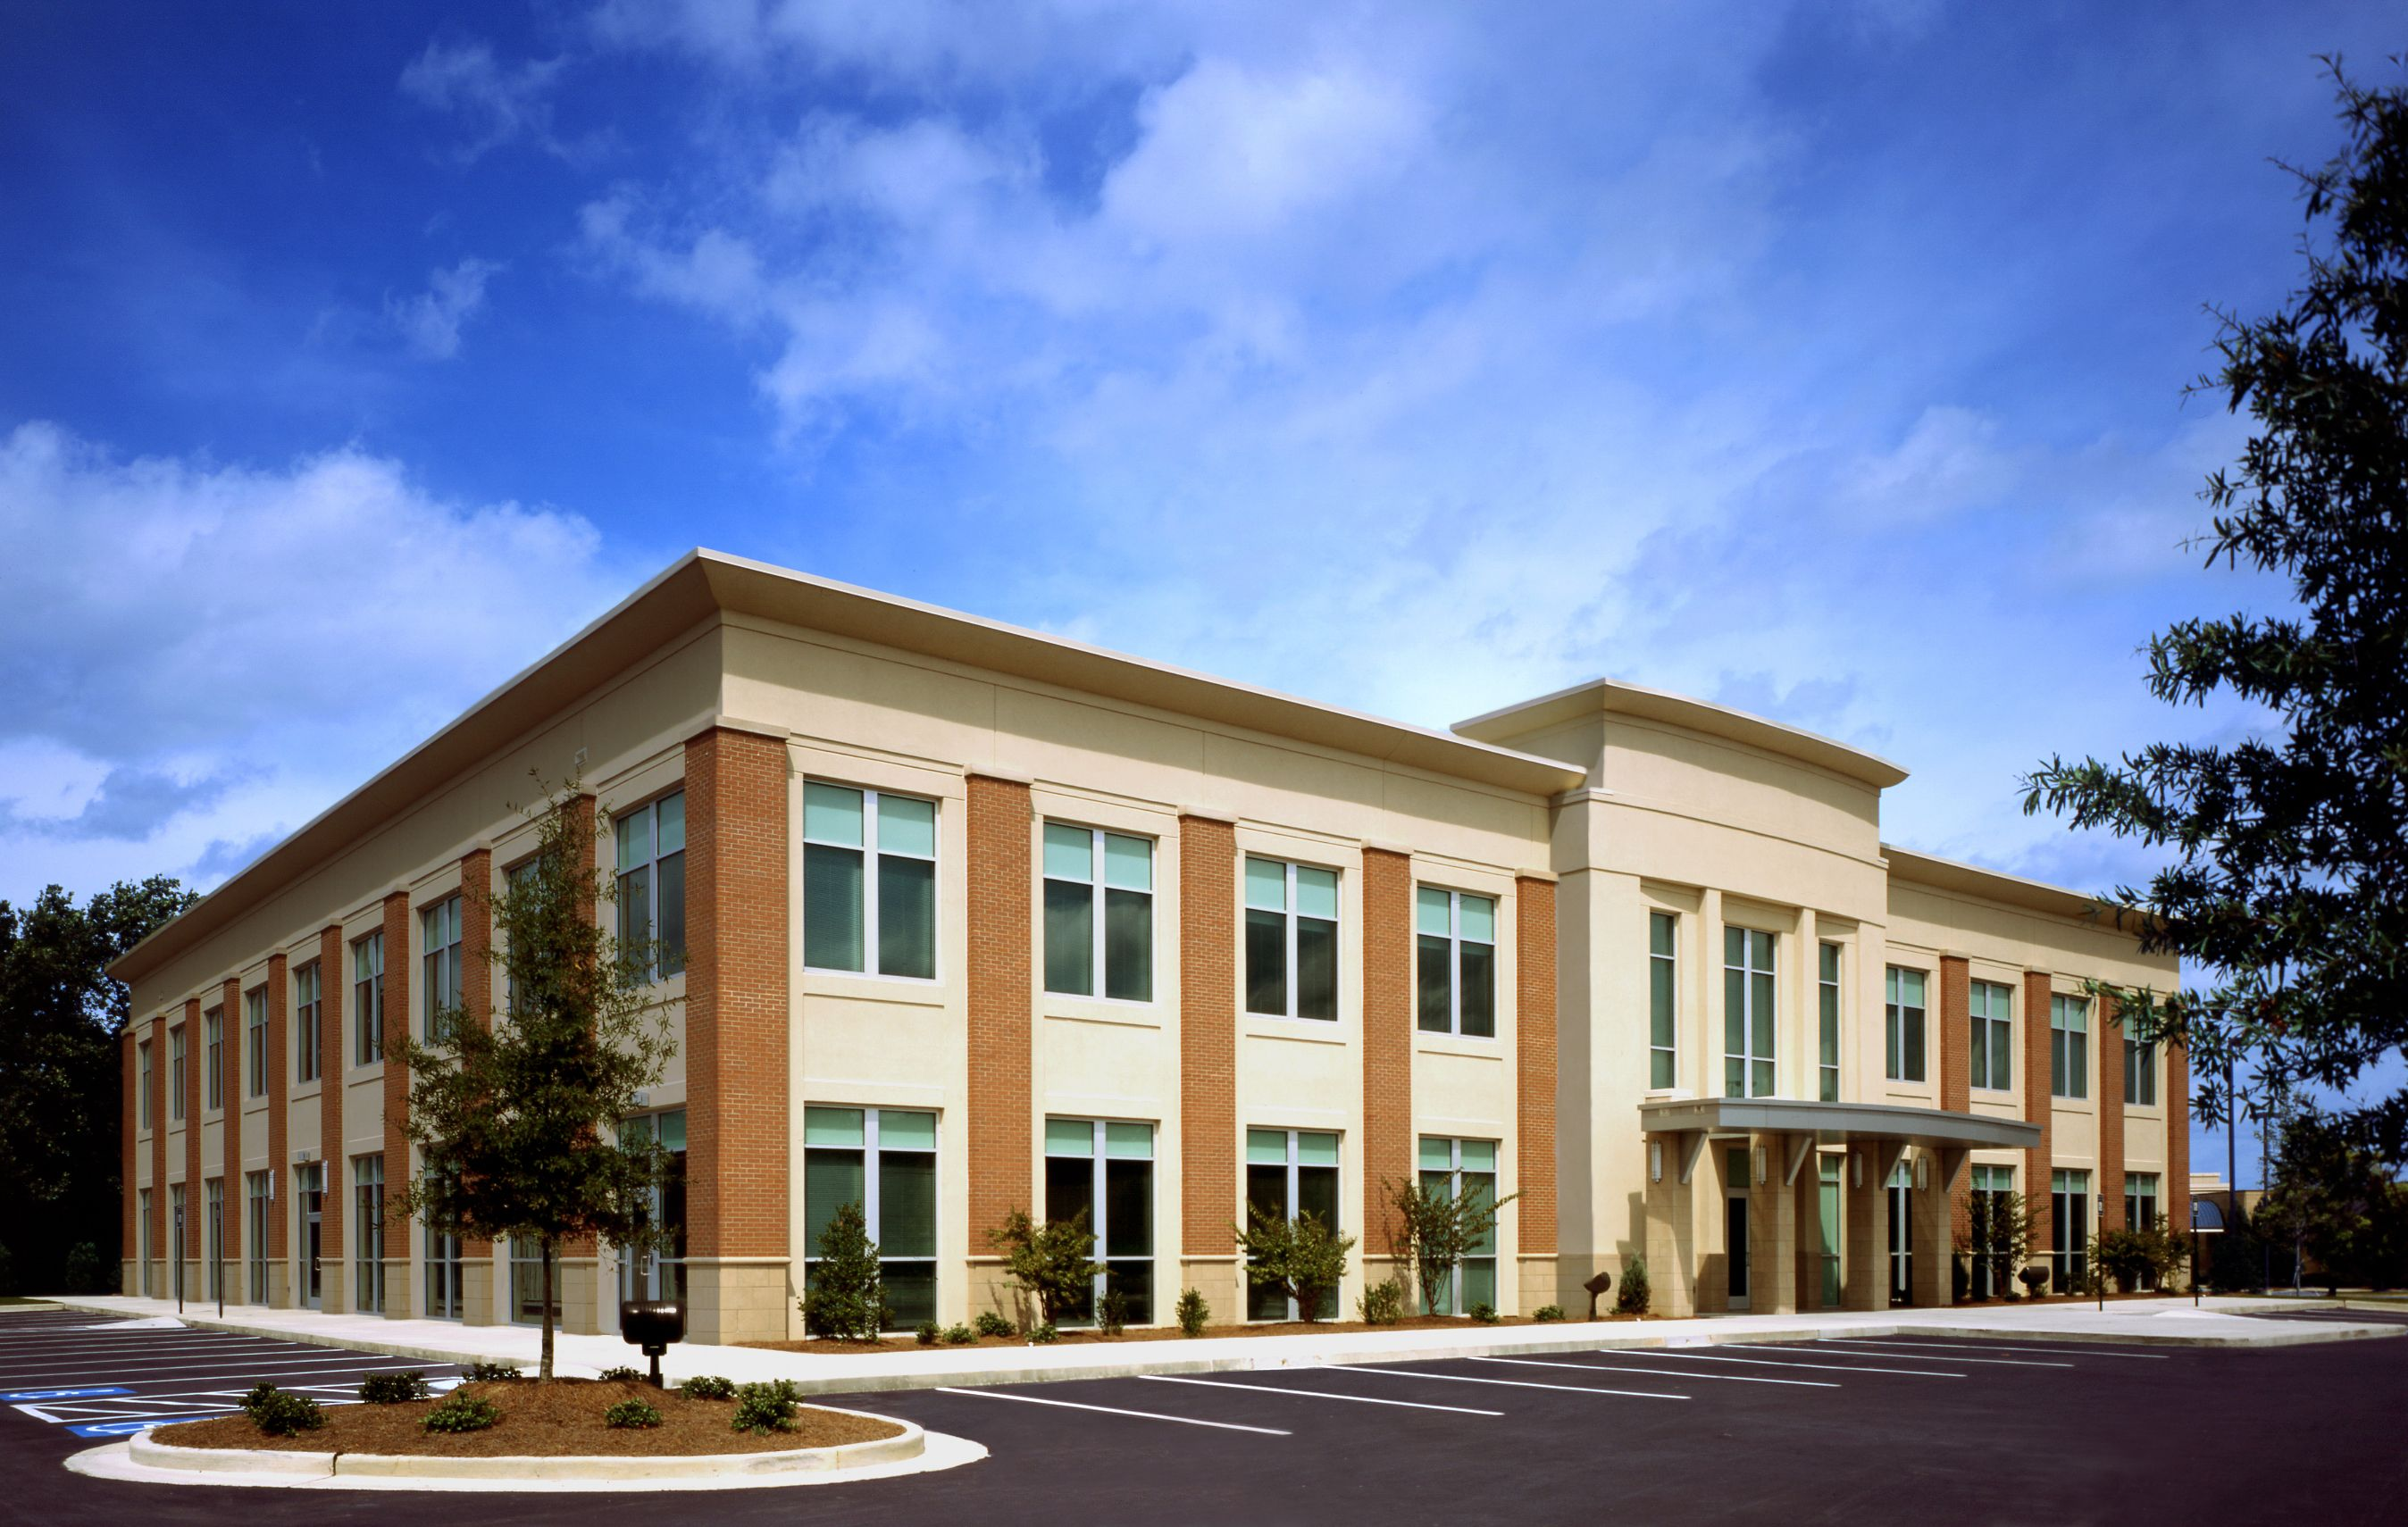 Medical office riverbend medical center by pieper o